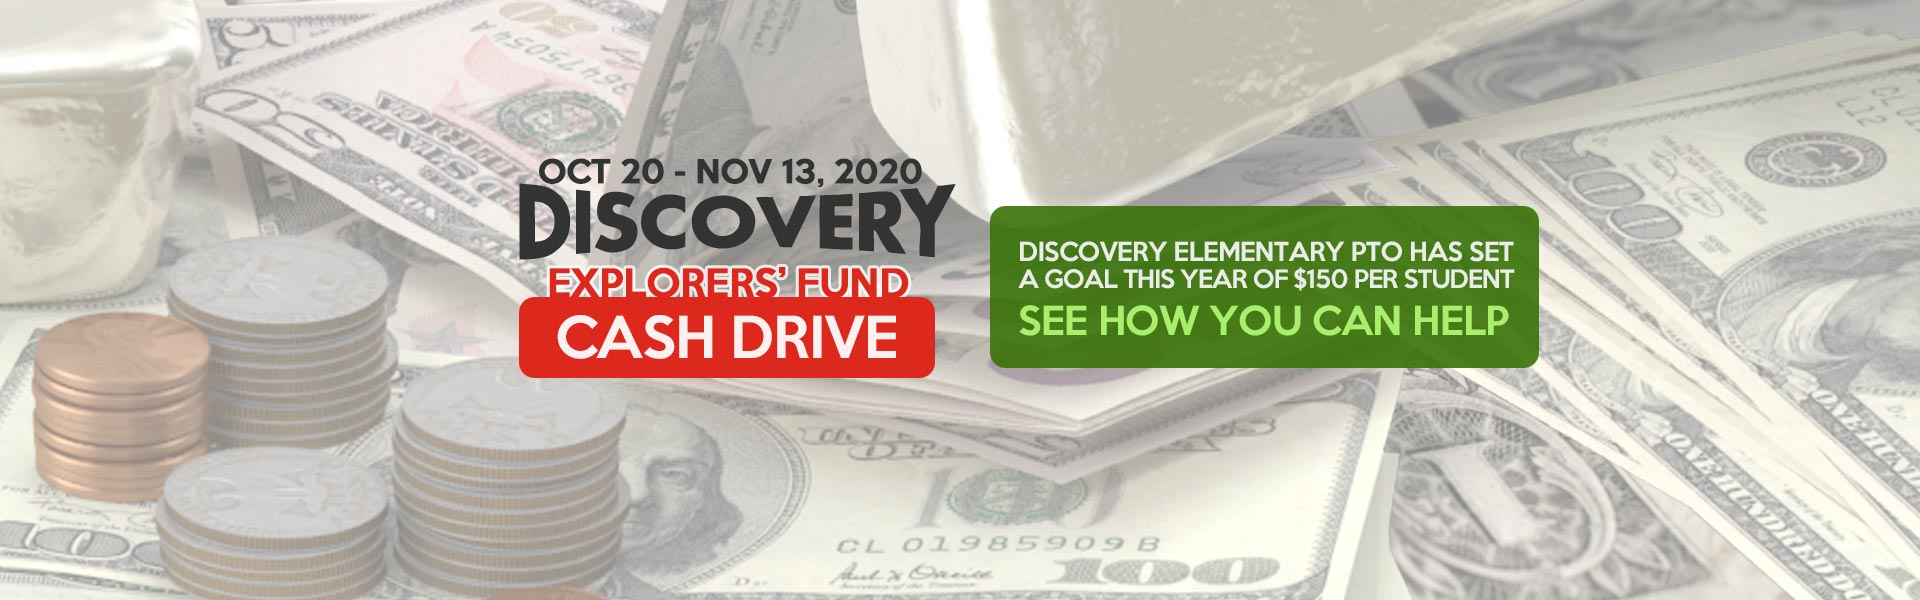 Explorers' Fund Cash Drive